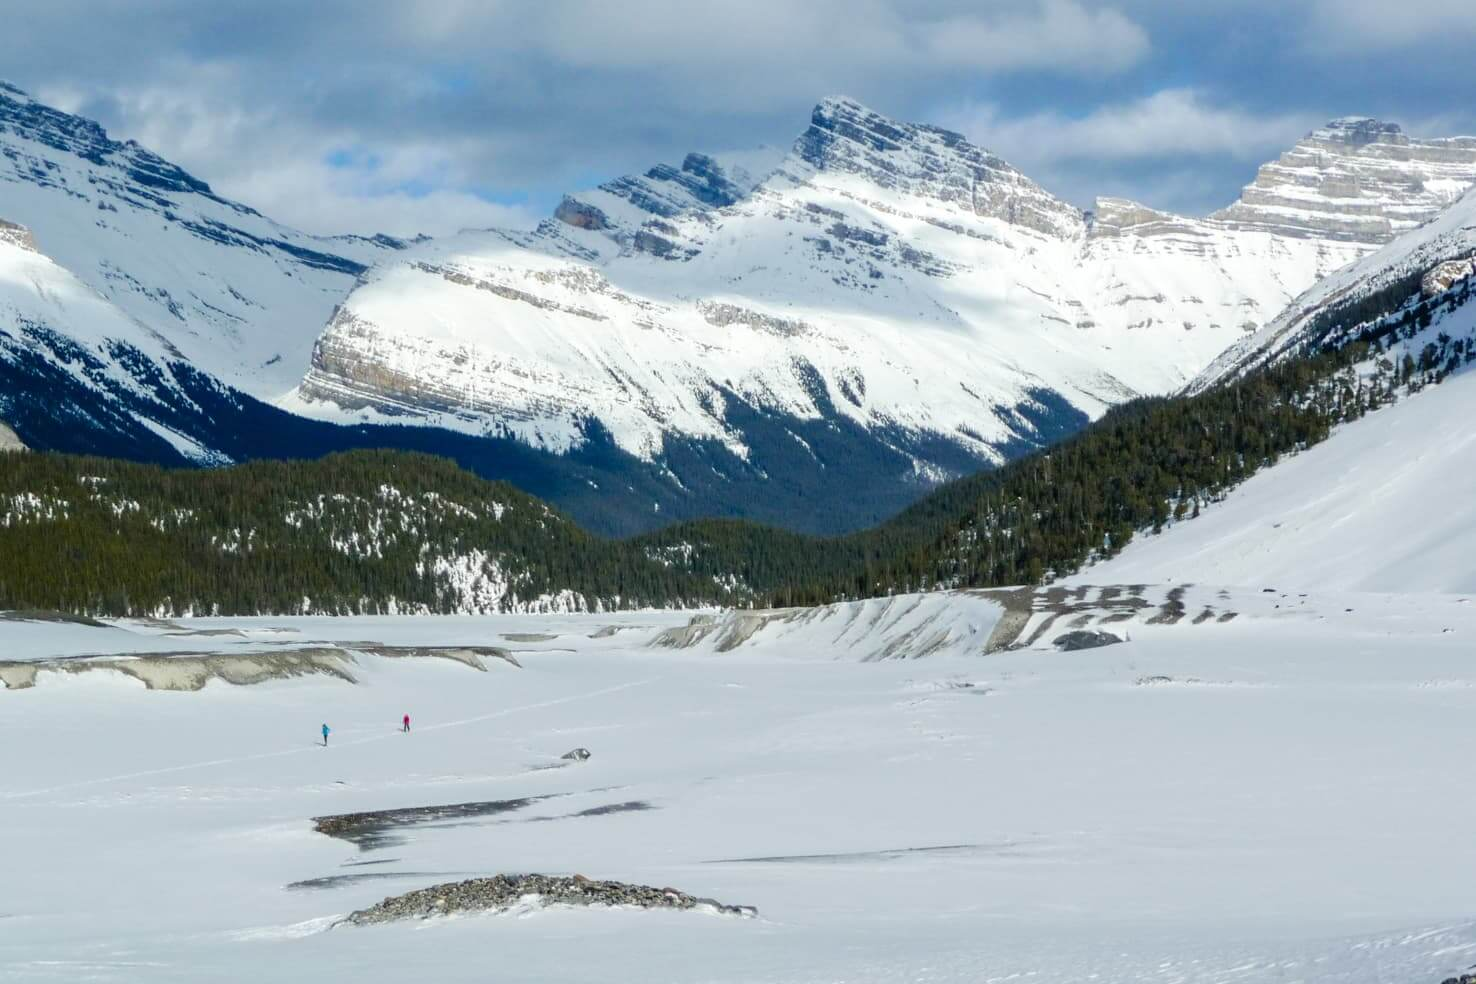 100 best things to do in Banff National Park, Canada - Cross country ski to Moraine Lake or Saskatchewan Glacier 2